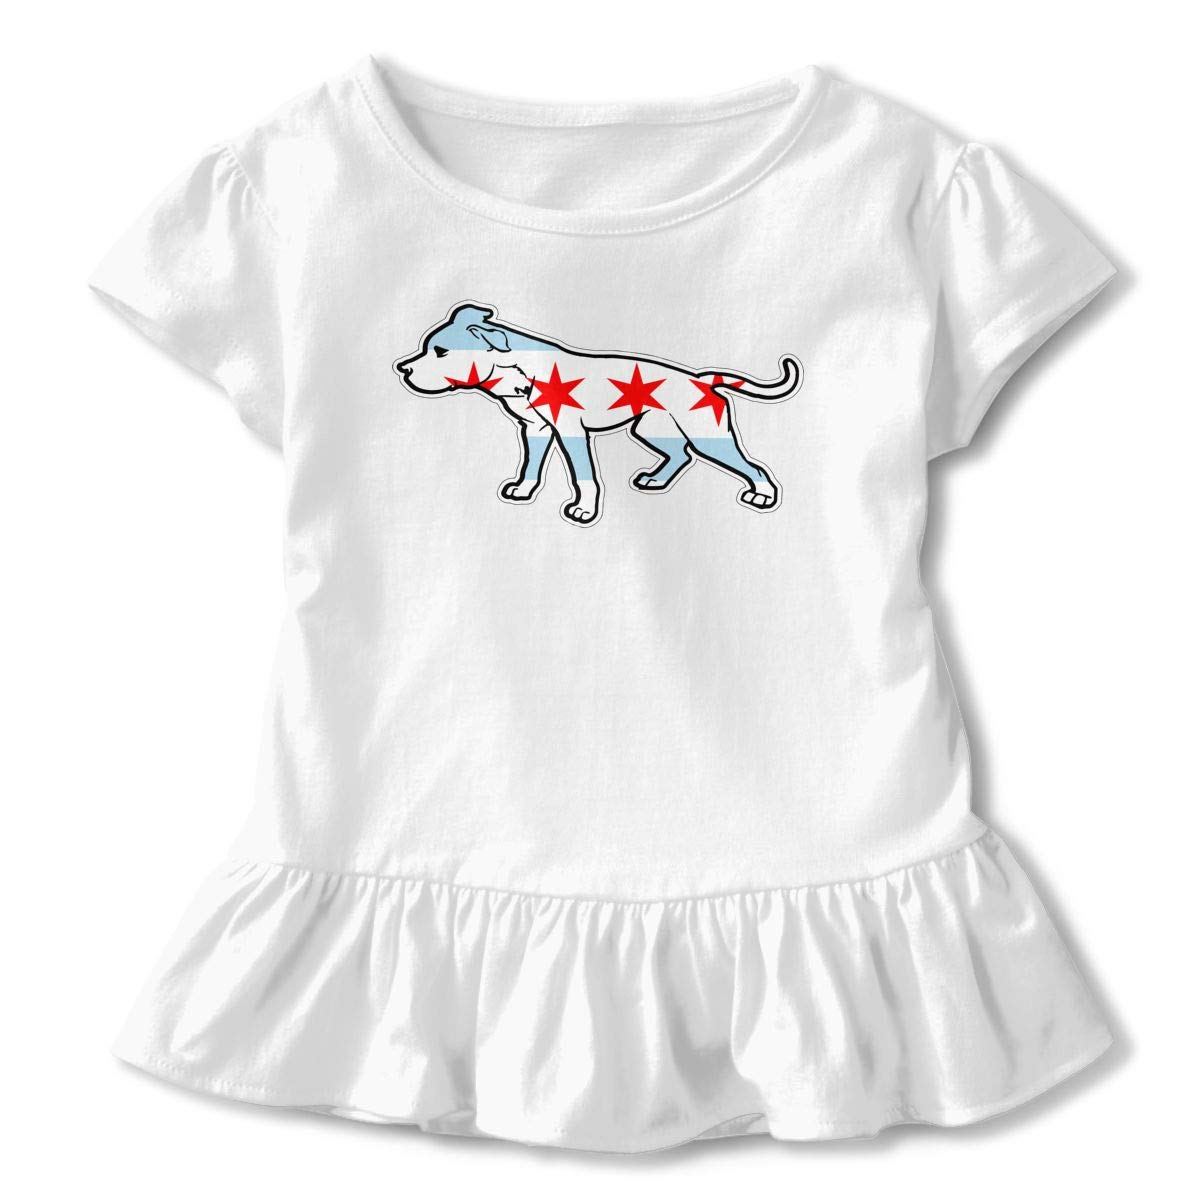 German Shorthaired Pointer in Glasses Baby Girls Short Sleeve T-Shirt Flounced Casual Shirt Dress for 2-6 Years Old Baby